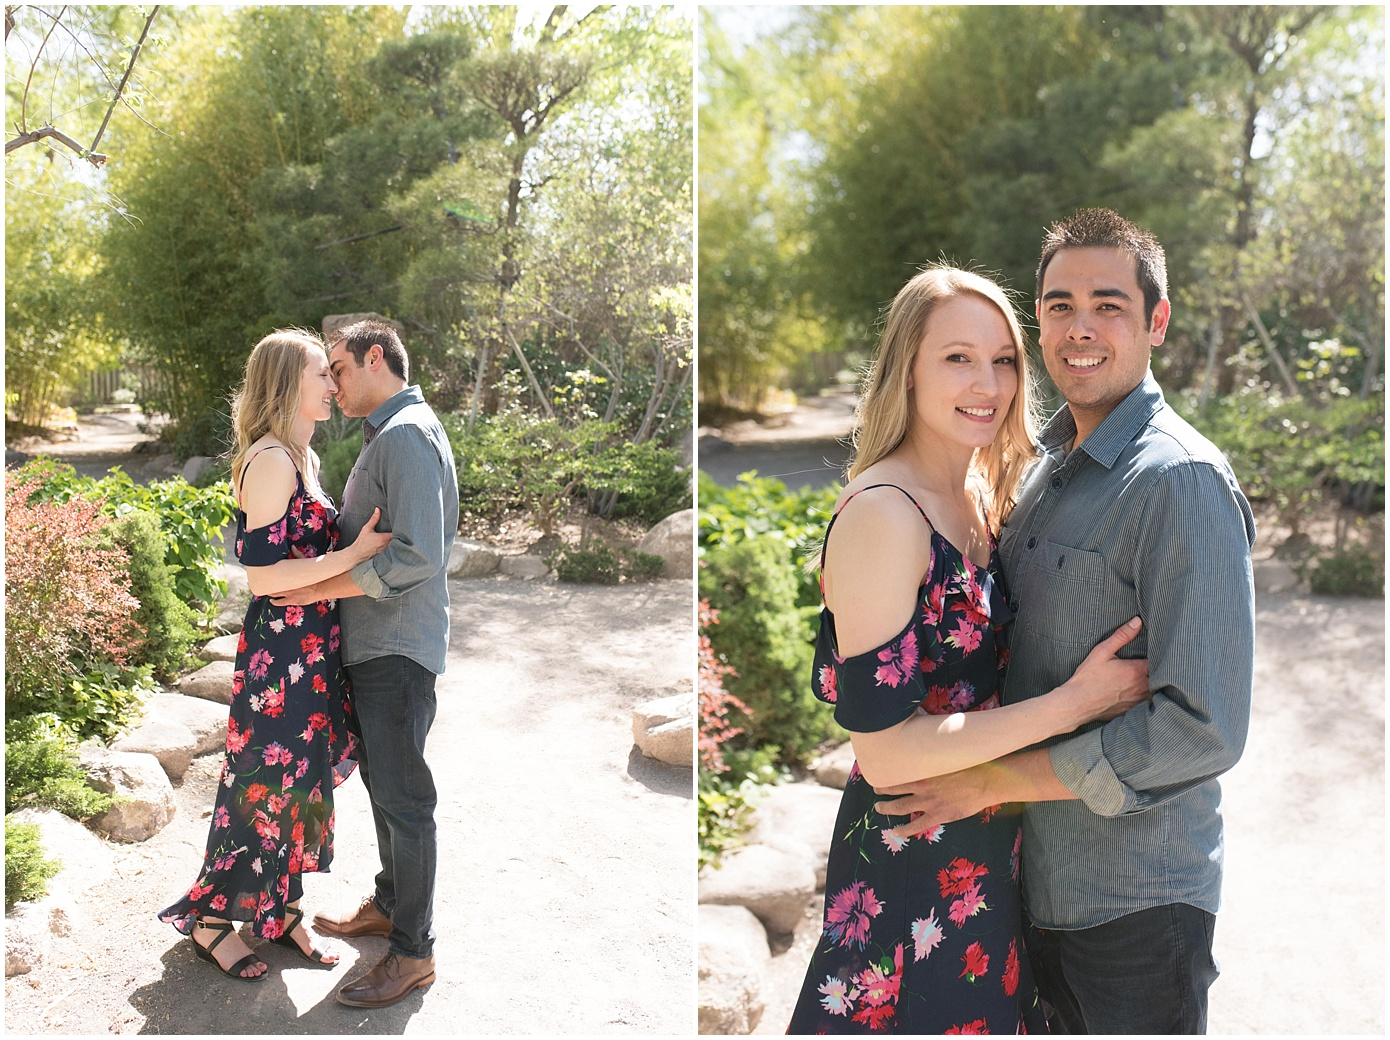 kayla kitts photography-kristi-sam-botanic-gardens-sandia-lakes-albuquerque-engagement_0002.jpg